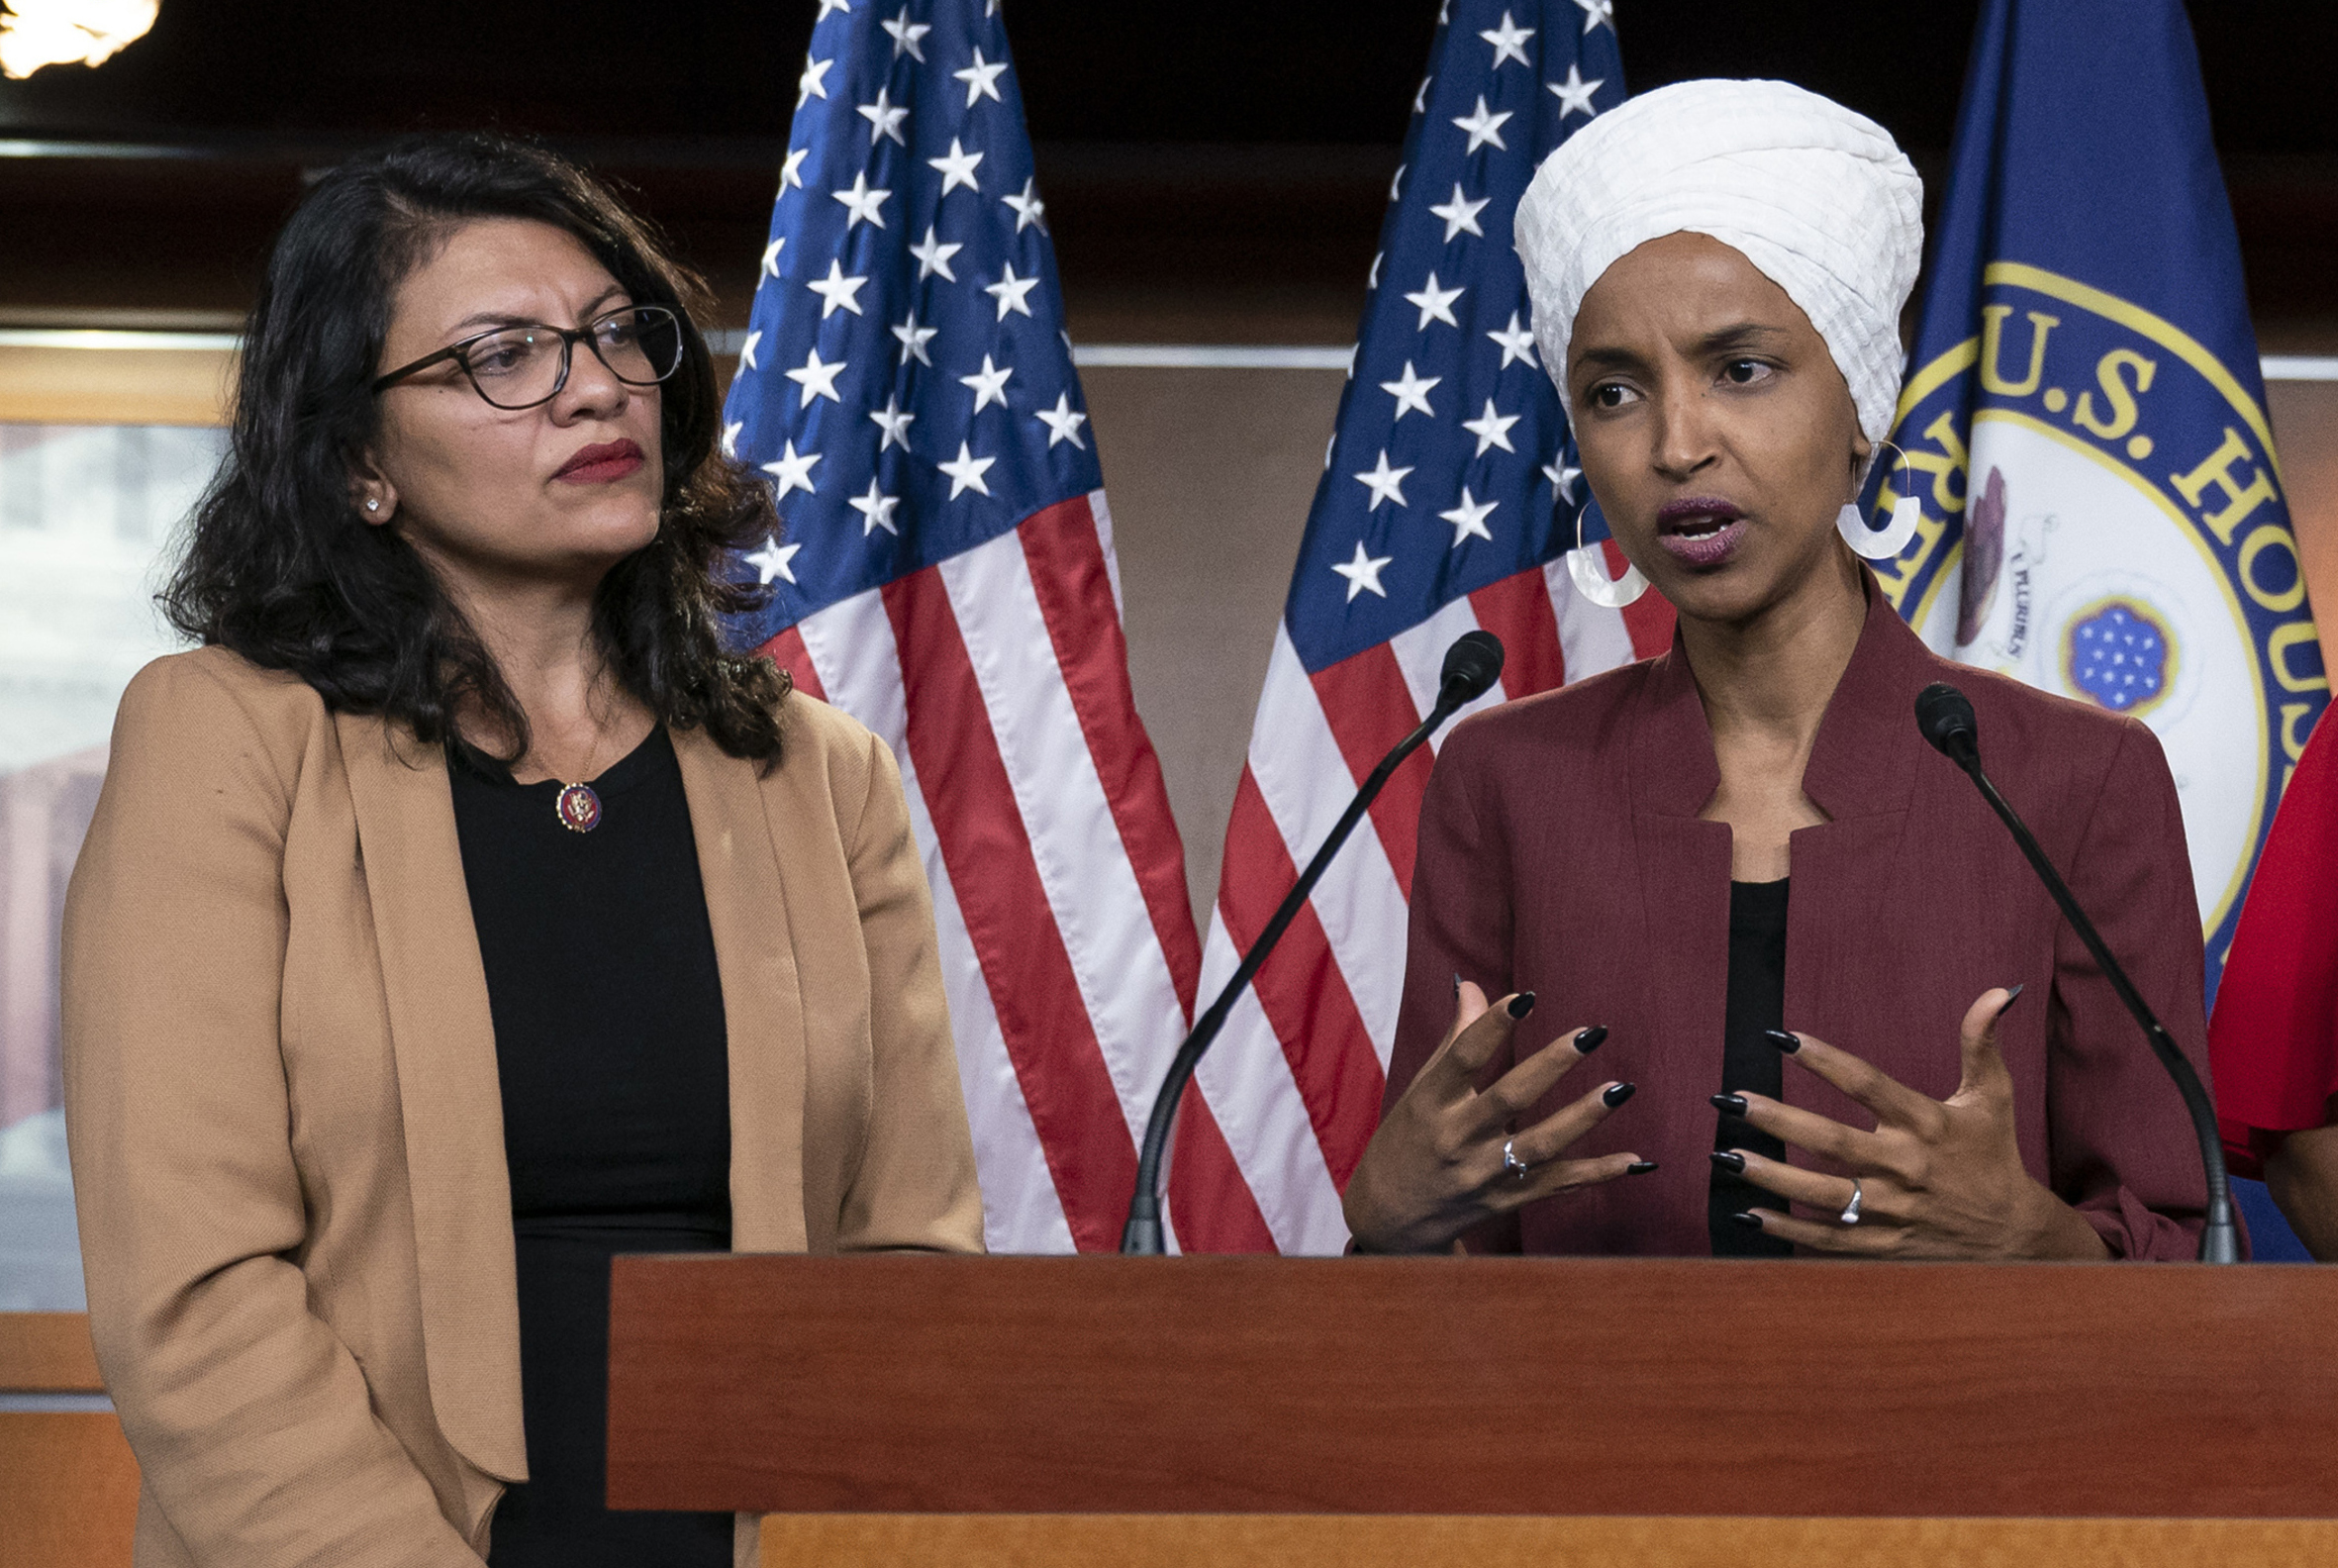 Omar Rejects Netanyahu's Claims About Itinerary